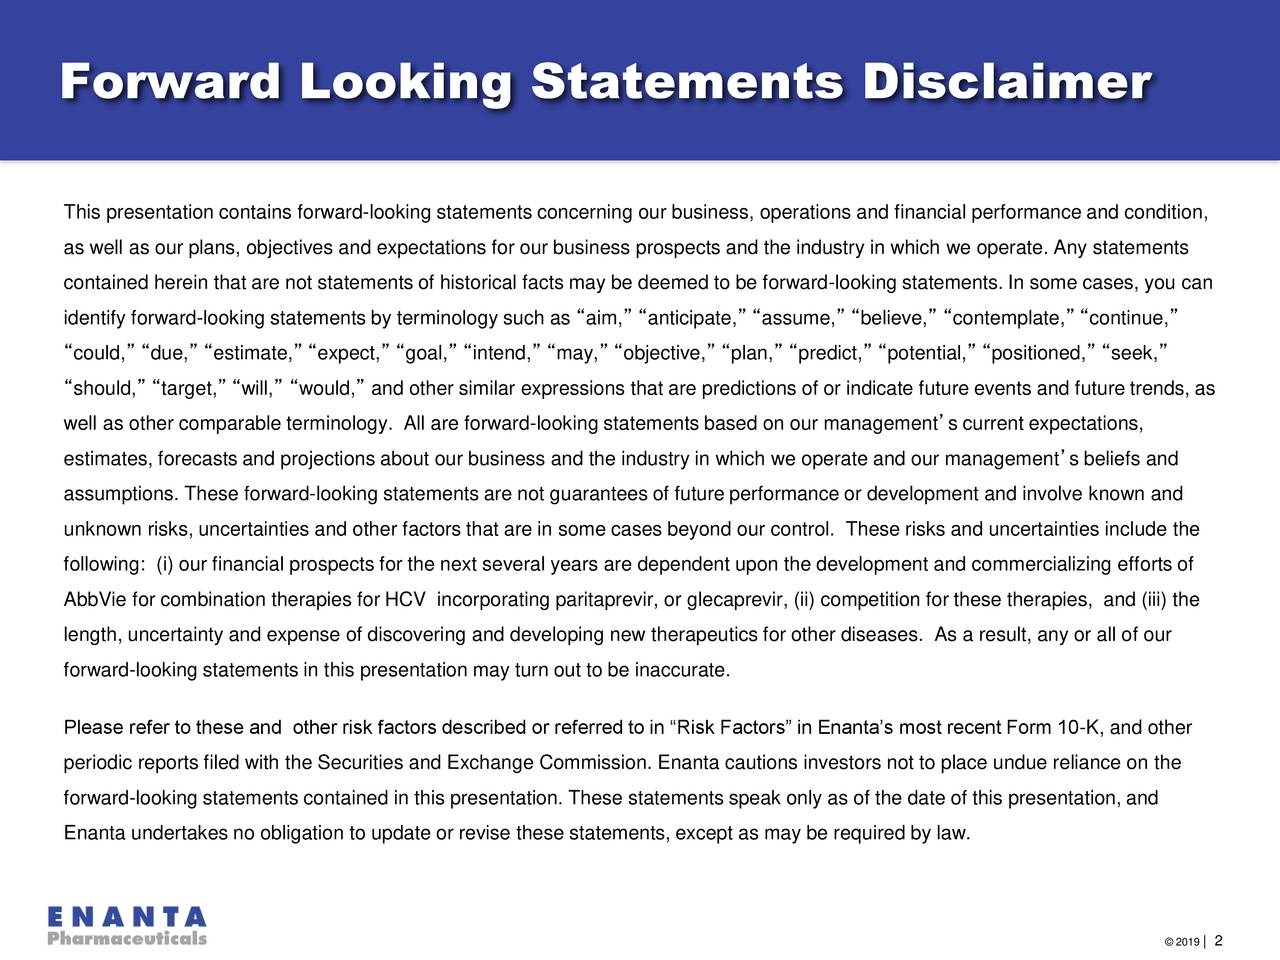 """This presentation contains forward-looking statements concerning our business, operations and financial performance and condition, as well as our plans, objectives and expectations for our business prospects and the industry in which we operate. Any statements contained herein that are not statements of historical facts may be deemed to be forward-looking statements. In some cases, you can identify forward-looking statements by terminology such as """"aim,"""" """"anticipate,"""" """"assume,"""" """"believe,"""" """"contemplate,"""" """"continue,"""" """"could,"""" """"due,"""" """"estimate,"""" """"expect,"""" """"goal,"""" """"intend,"""" """"may,"""" """"objective,"""" """"plan,"""" """"predict,"""" """"potential,"""" """"positioned,"""" """"seek,"""" """"should,"""" """"target,"""" """"will,"""" """"would,"""" and other similar expressions that are predictions of or indicate future events and future trends, as well as other comparable terminology. All are forward-looking statements based on our management's current expectations, estimates, forecasts and projections about our business and the industry in which we operate and our management's beliefs and assumptions. These forward-looking statements are not guarantees of future performance or development and involve known and unknown risks, uncertainties and other factors that are in some cases beyond our control. These risks and uncertainties include the following: (i) our financial prospects for the next several years are dependent upon the development and commercializing efforts of AbbVie for combination therapies for HCV incorporating paritaprevir, or glecaprevir, (ii) competition for these therapies, and (iii) the length, uncertainty and expense of discovering and developing new therapeutics for other diseases. As a result, any or all of our forward-looking statements in this presentation may turn out to be inaccurate. Please refer to these and other risk factors described or referred to in """"Risk Factors"""" in Enanta's most recent Form 10-K, and other periodic reports filed with the Securities and Exchange Commission. Enanta cautions investors no"""